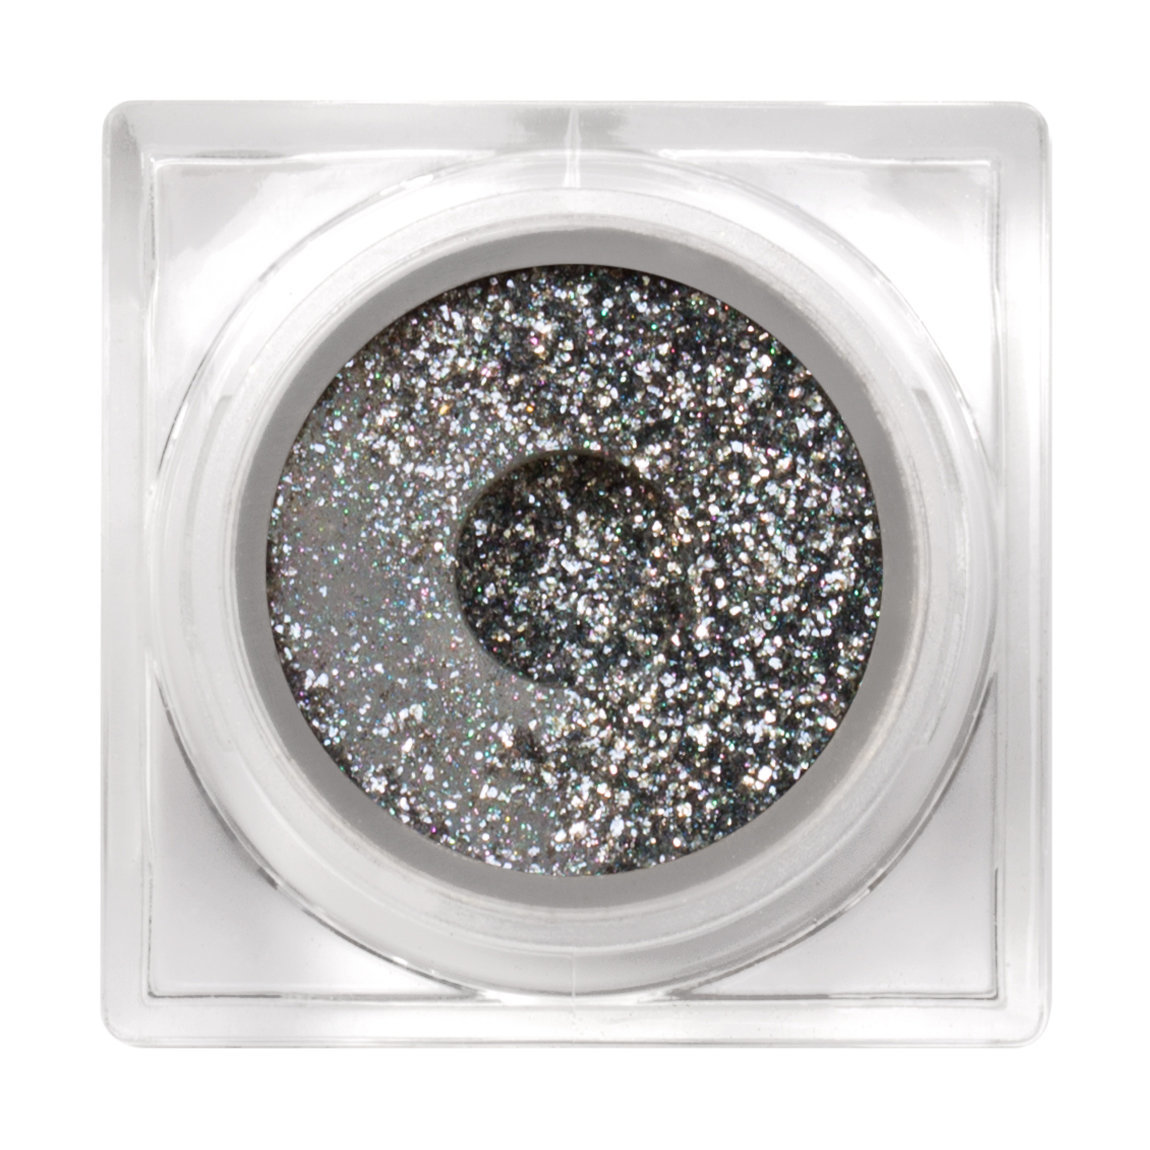 Lit Cosmetics Lit Metals Smolder (Silver) alternative view 1 - product swatch.